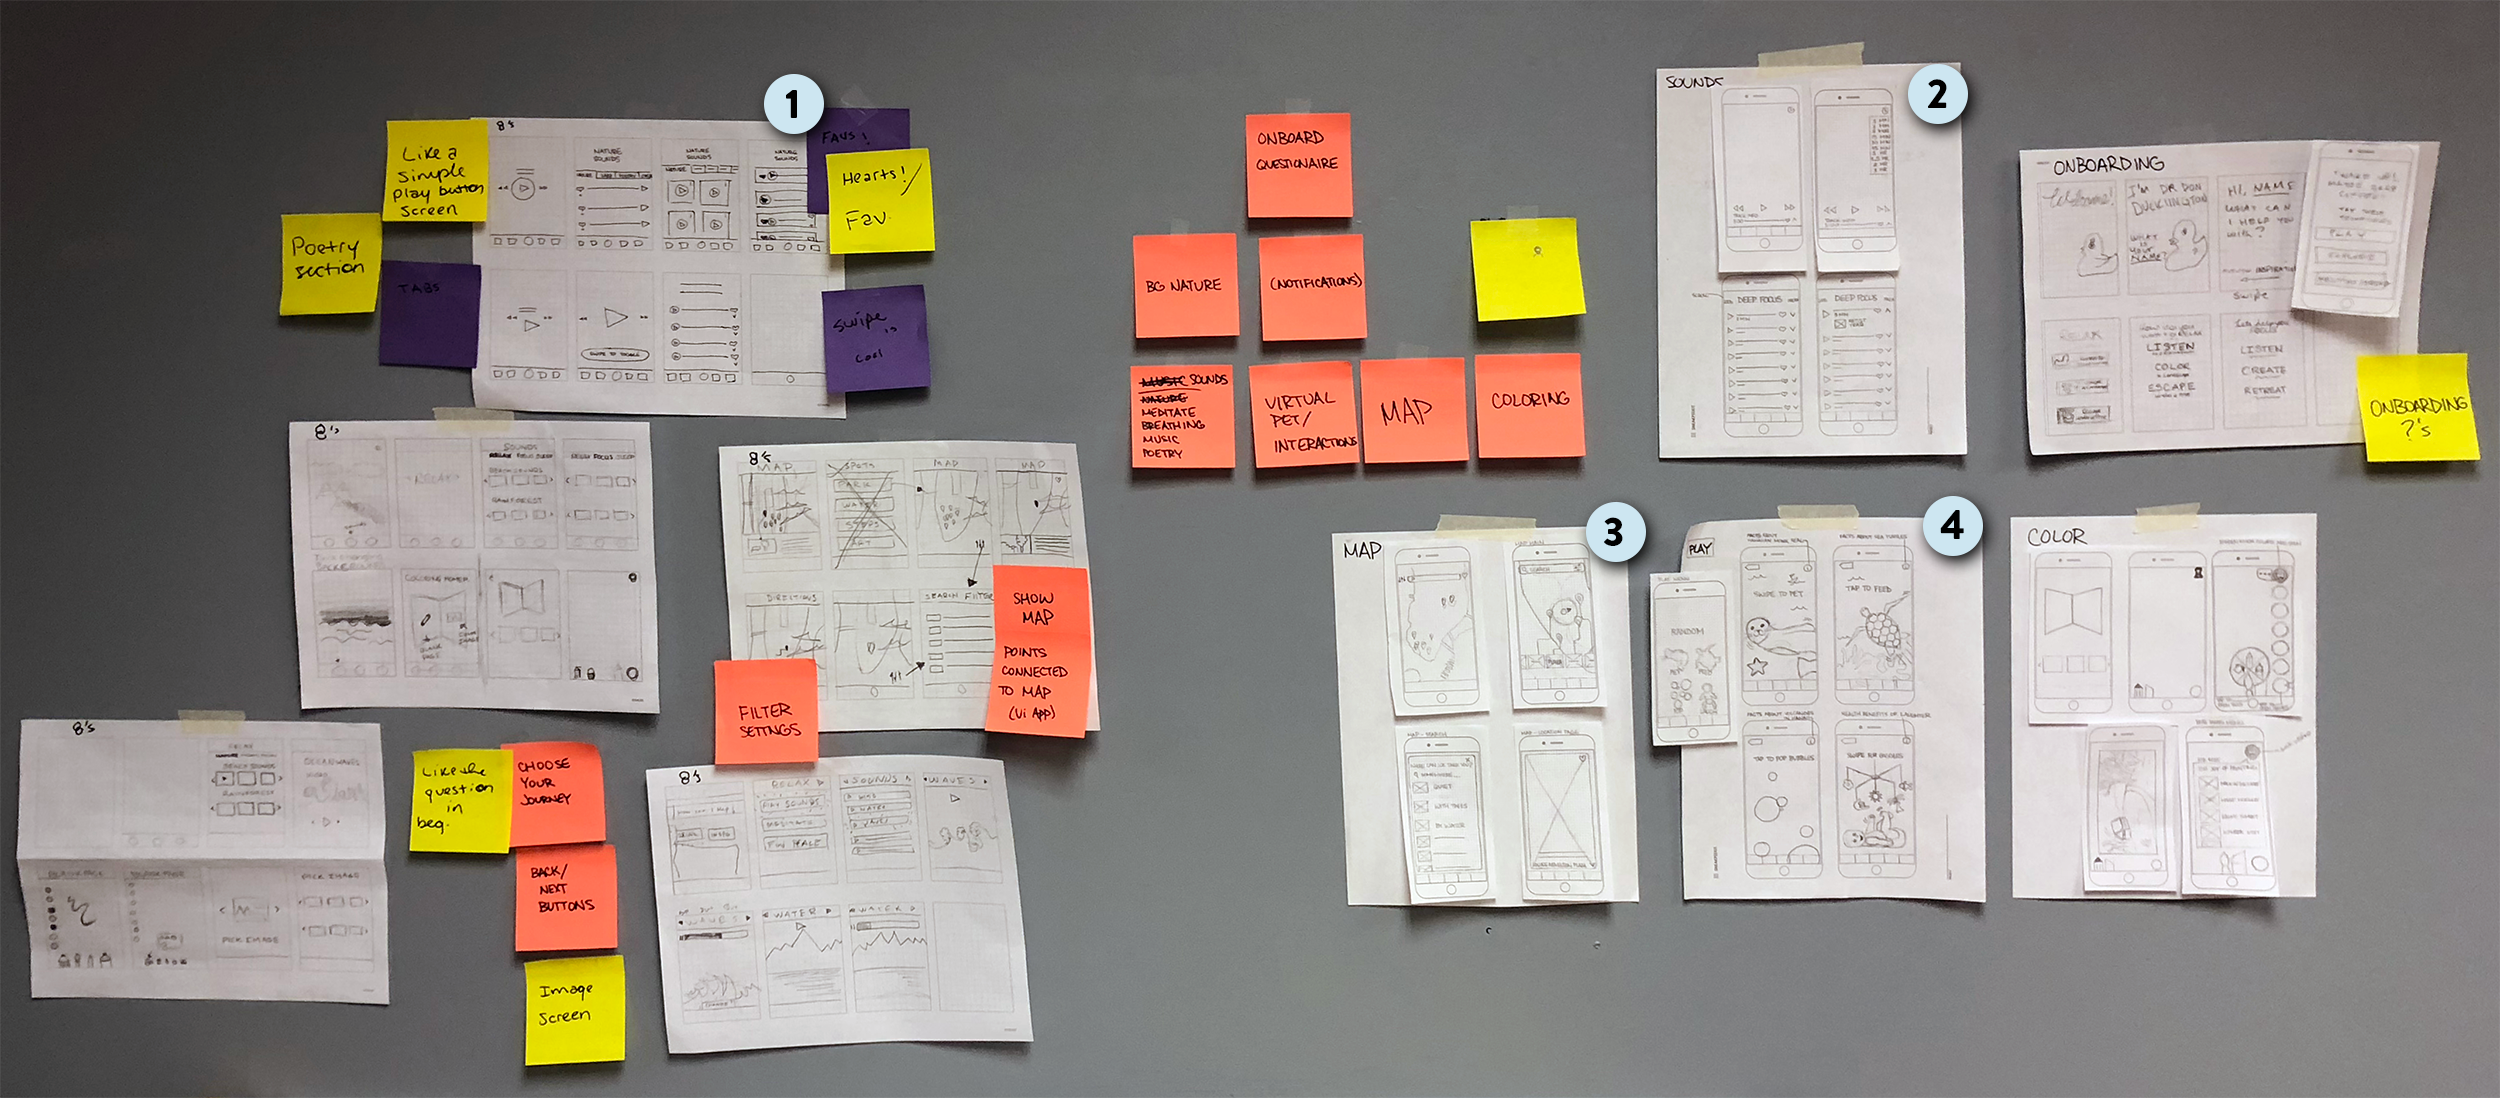 Left: Crazy 8's [1] Center: Post-its of MVP features Right: Sketches [2, 3, and 4]